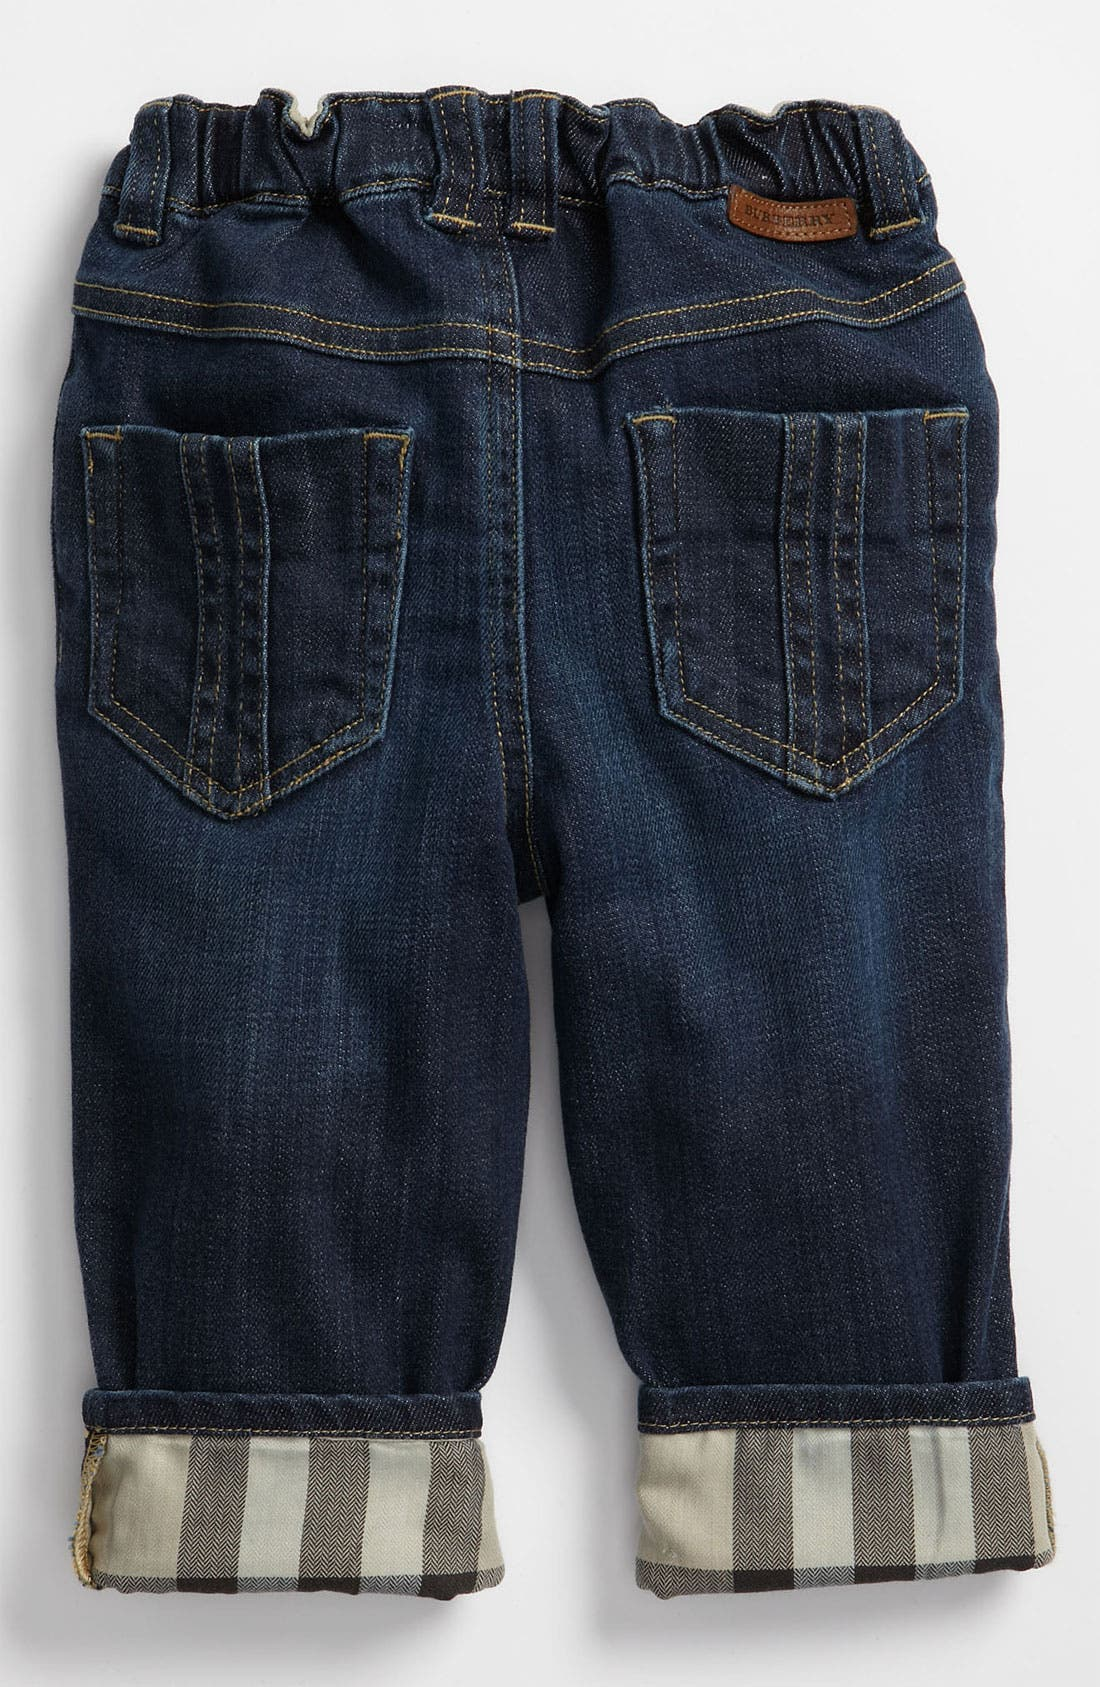 Main Image - Burberry Check Lined Jeans (Baby)